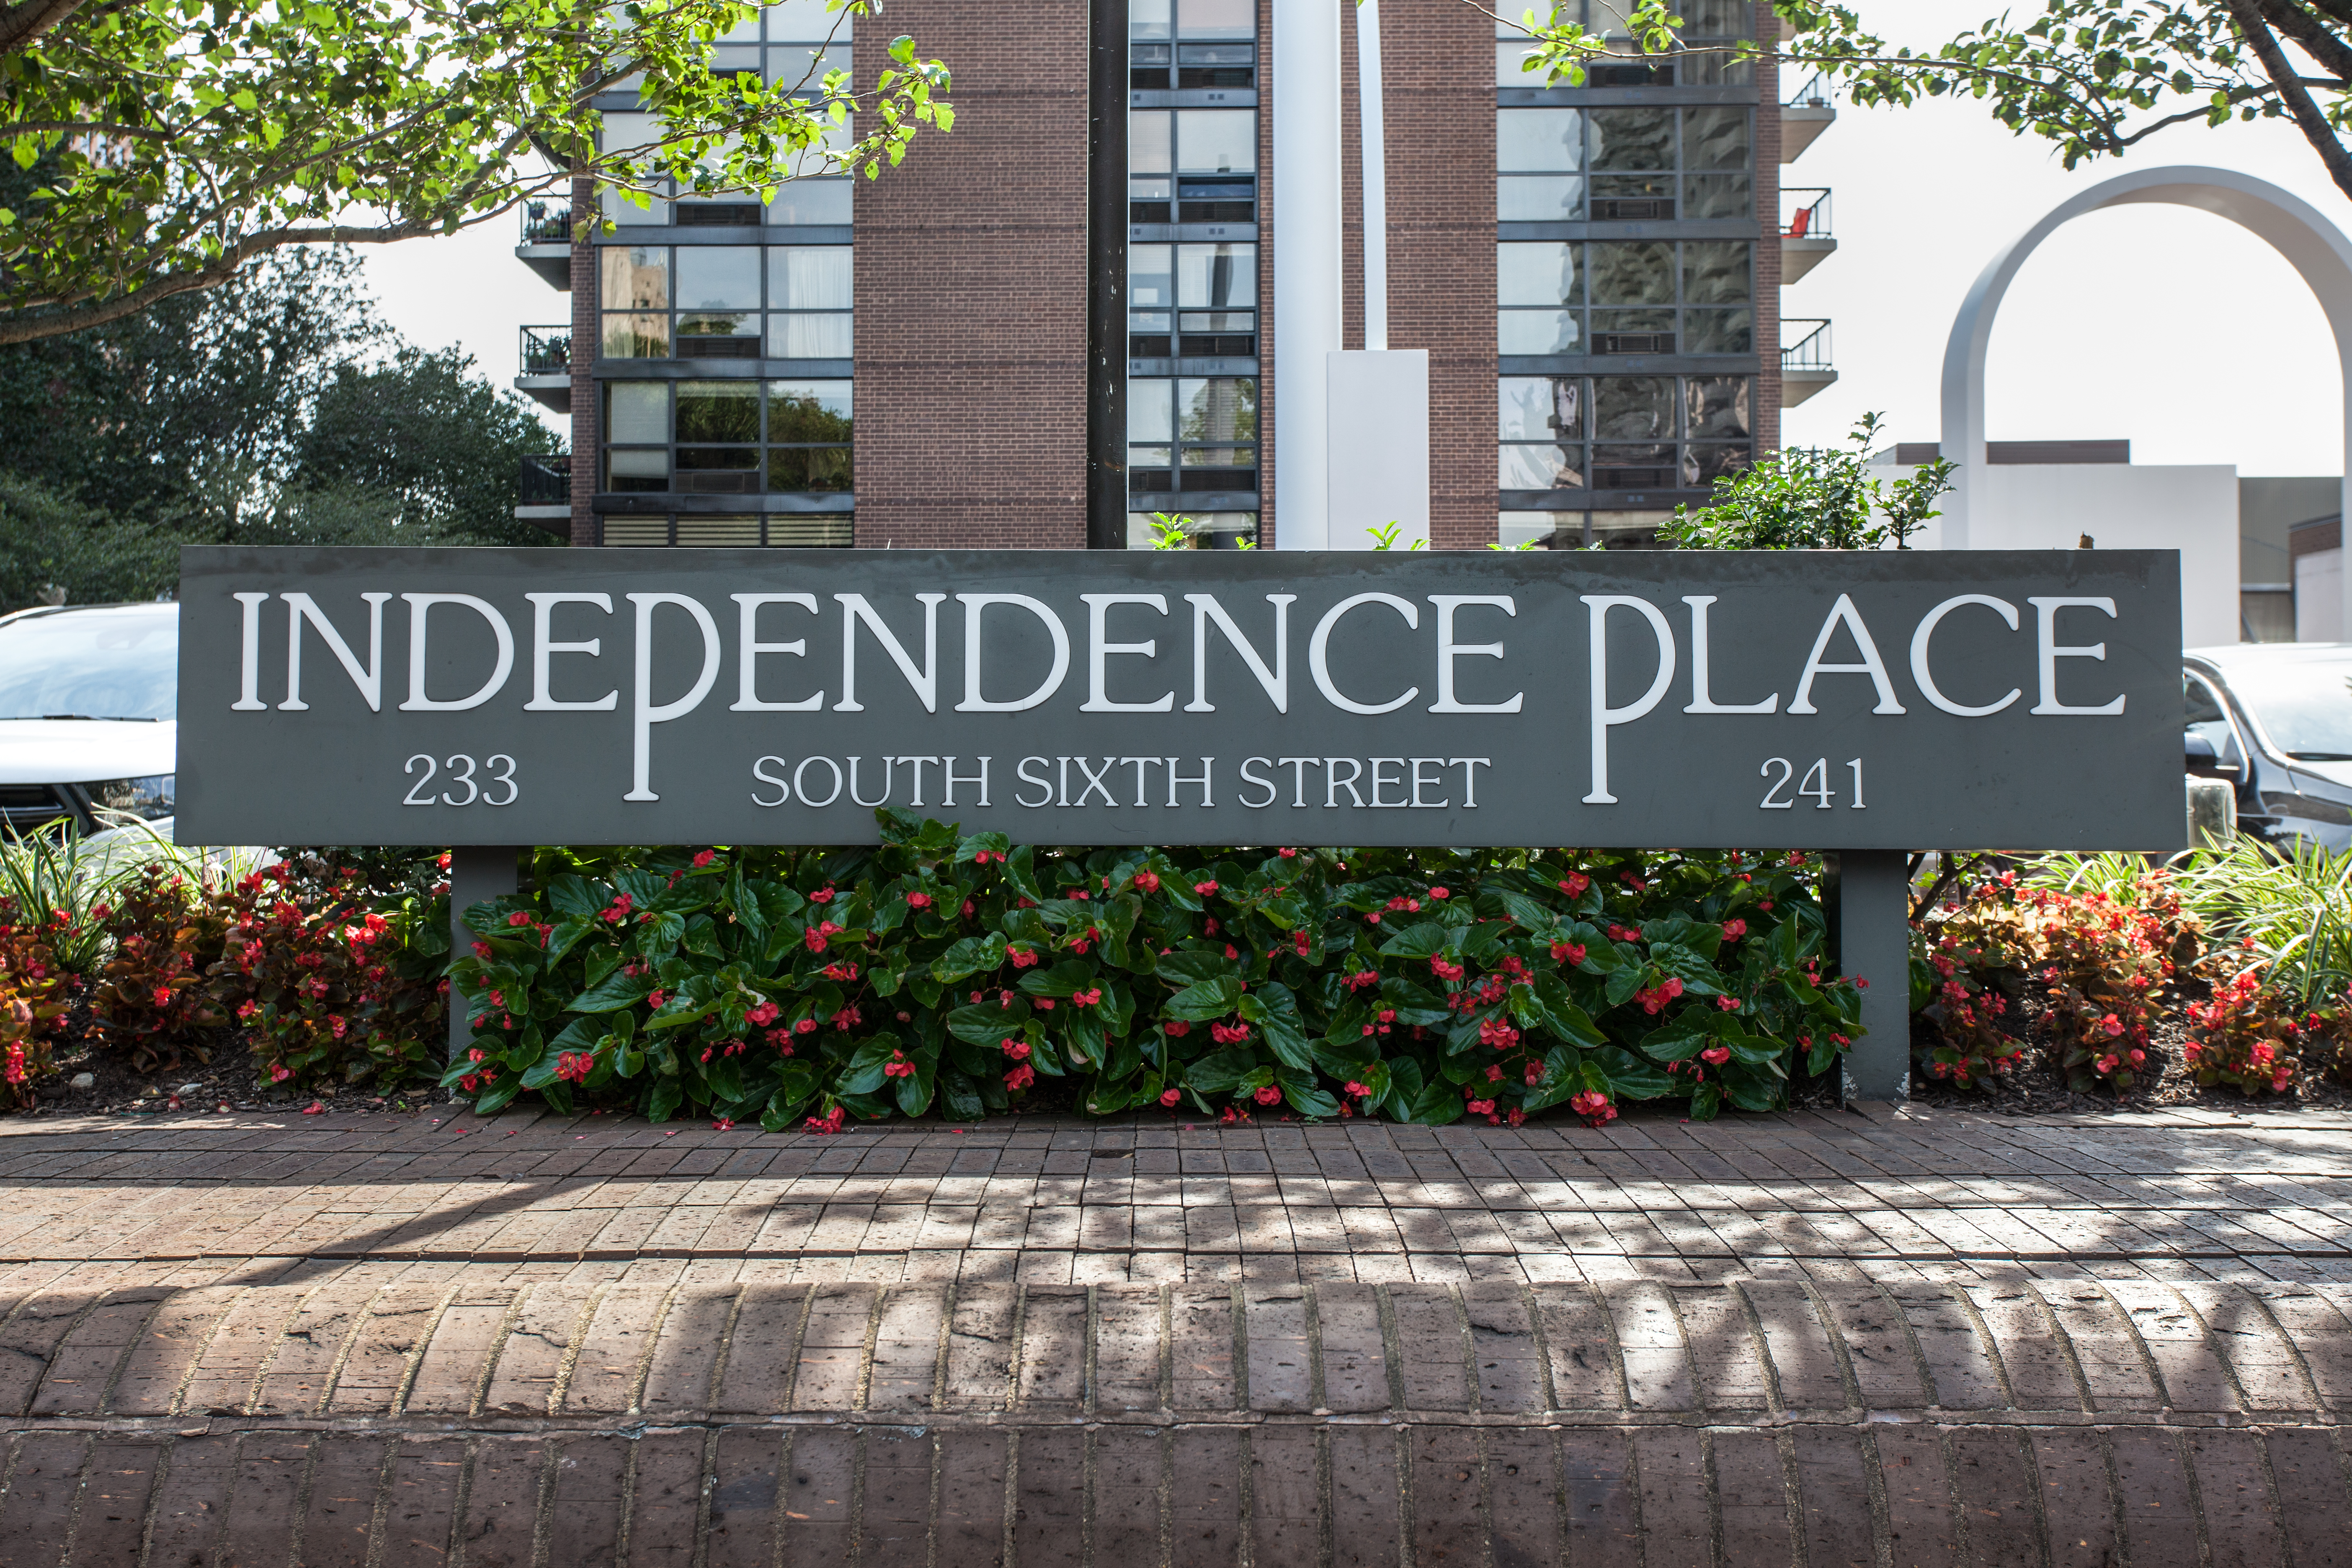 independence place condos for sale in philadelphia